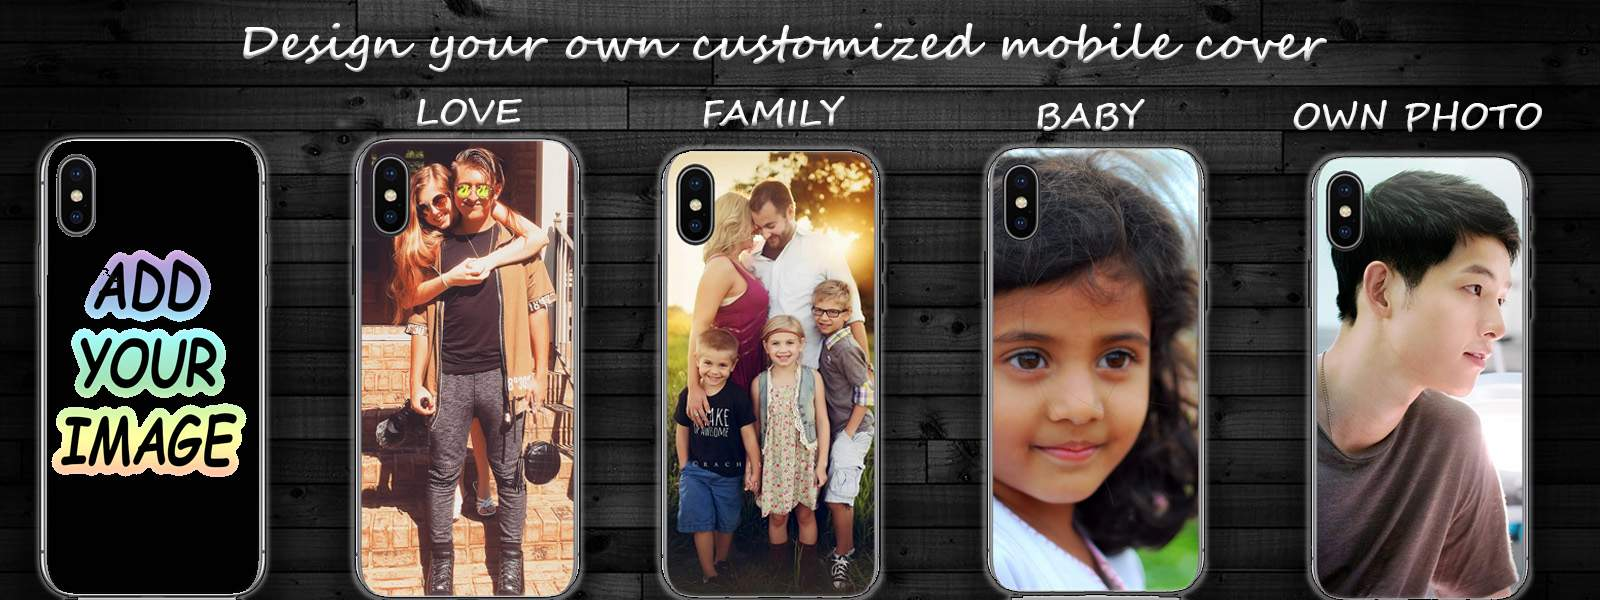 Design your own customized mobile cover or case